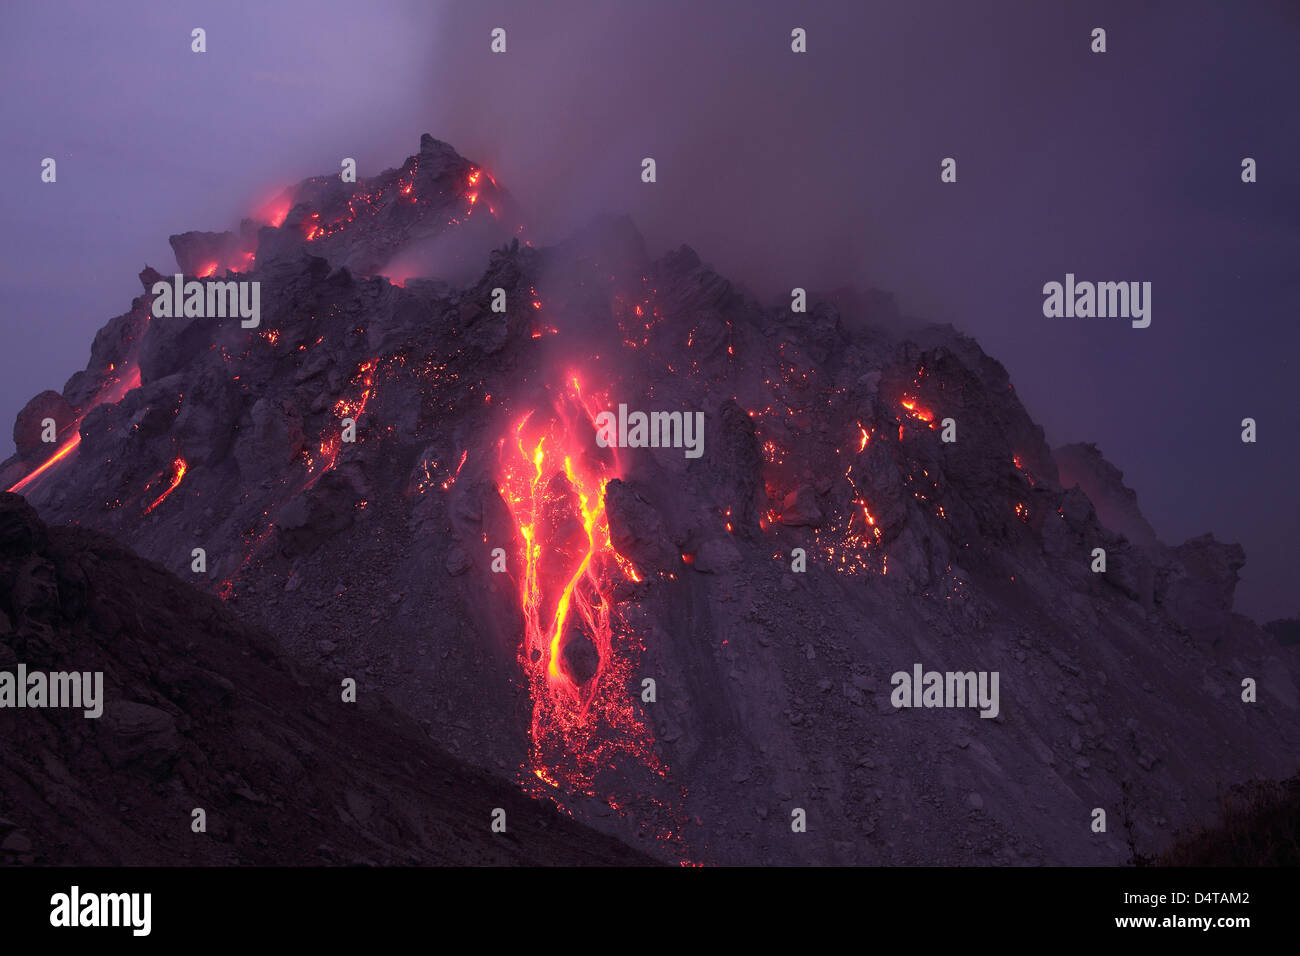 November 30, 2012 - Glowing Rerombola lava dome with incandescent rockfall deposit, Paluweh volcano, Flores, Indonesia. - Stock Image